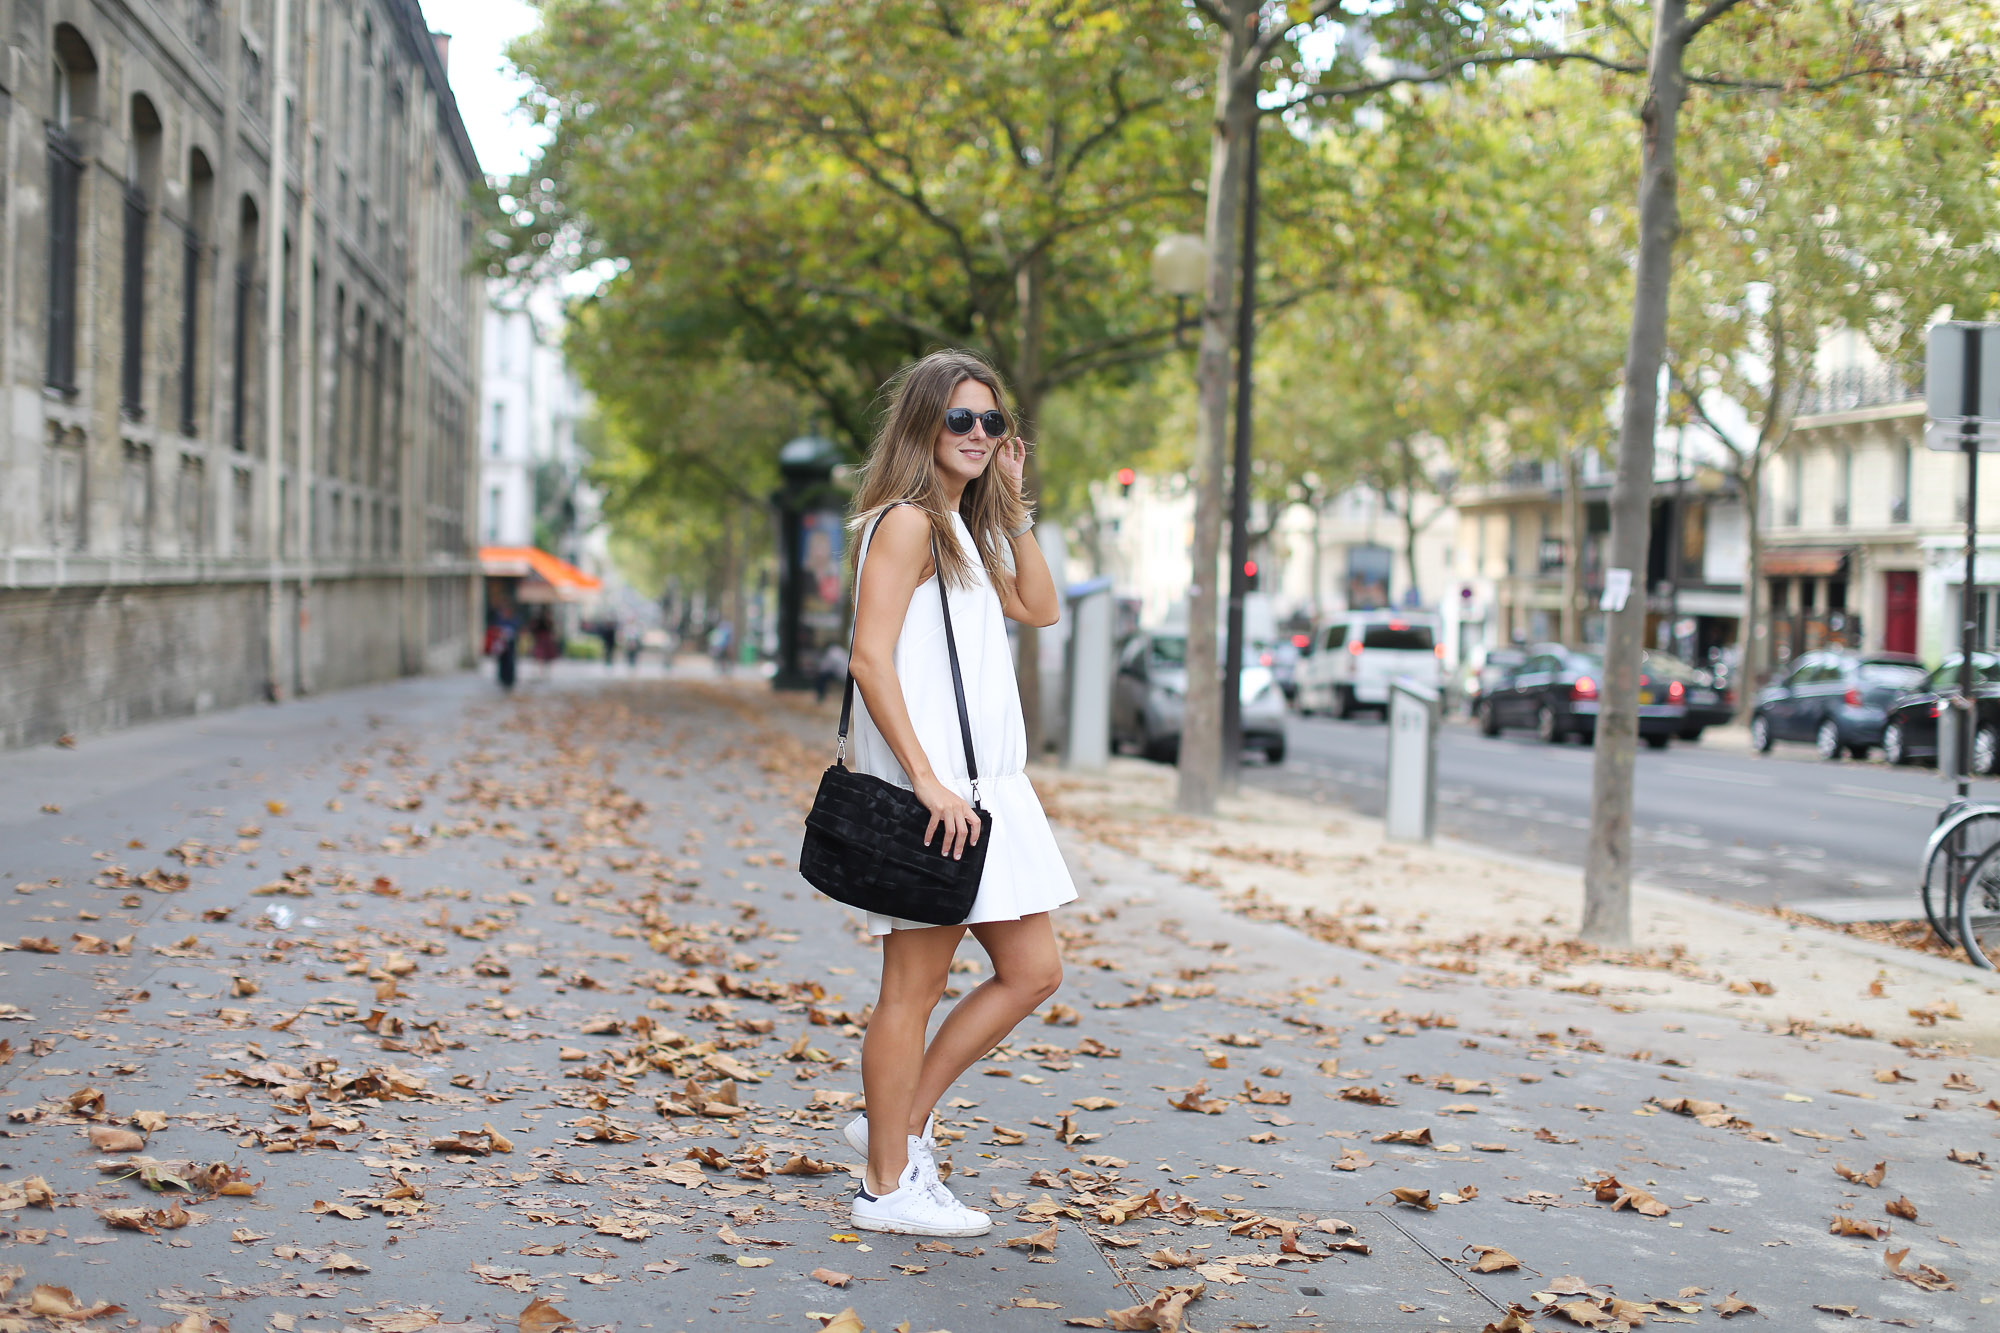 Clochet_paris_h&m_trend_white_neoprene_dress_adidas_stan_smith-1-7